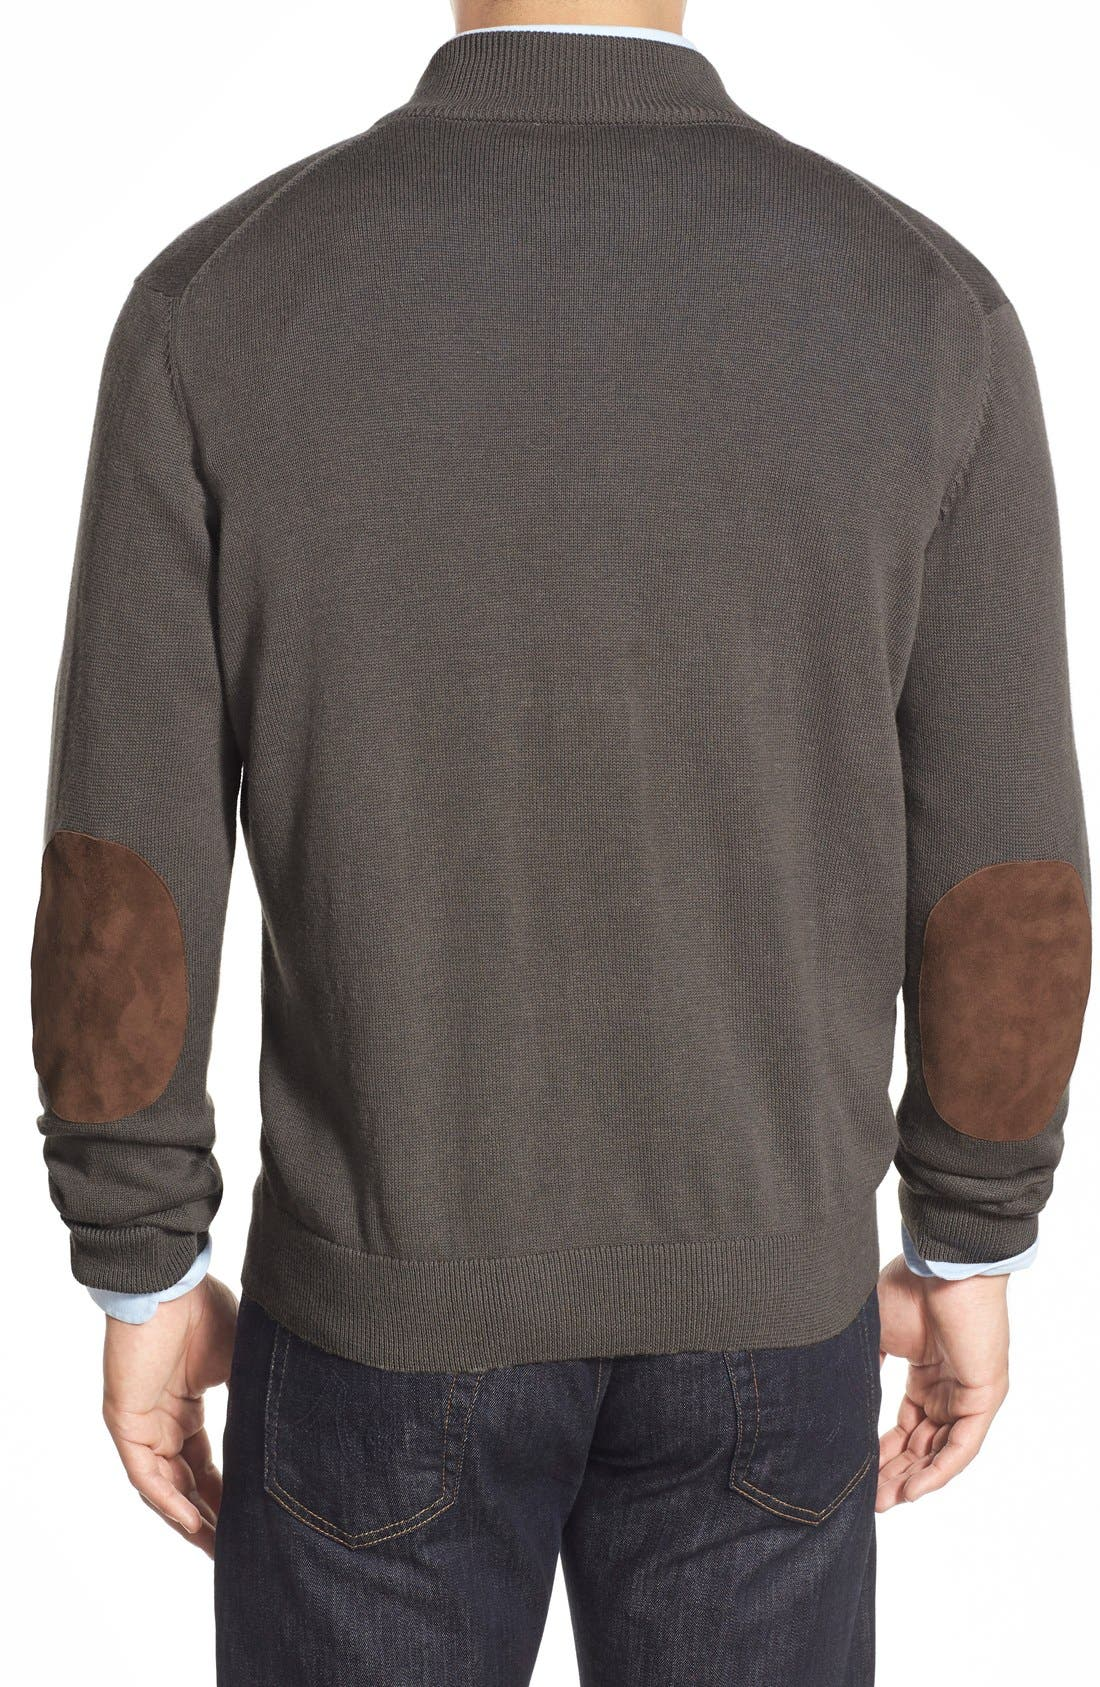 'Round Hill' Quarter Zip Sweater with Suede Elbow Patches,                             Alternate thumbnail 3, color,                             025